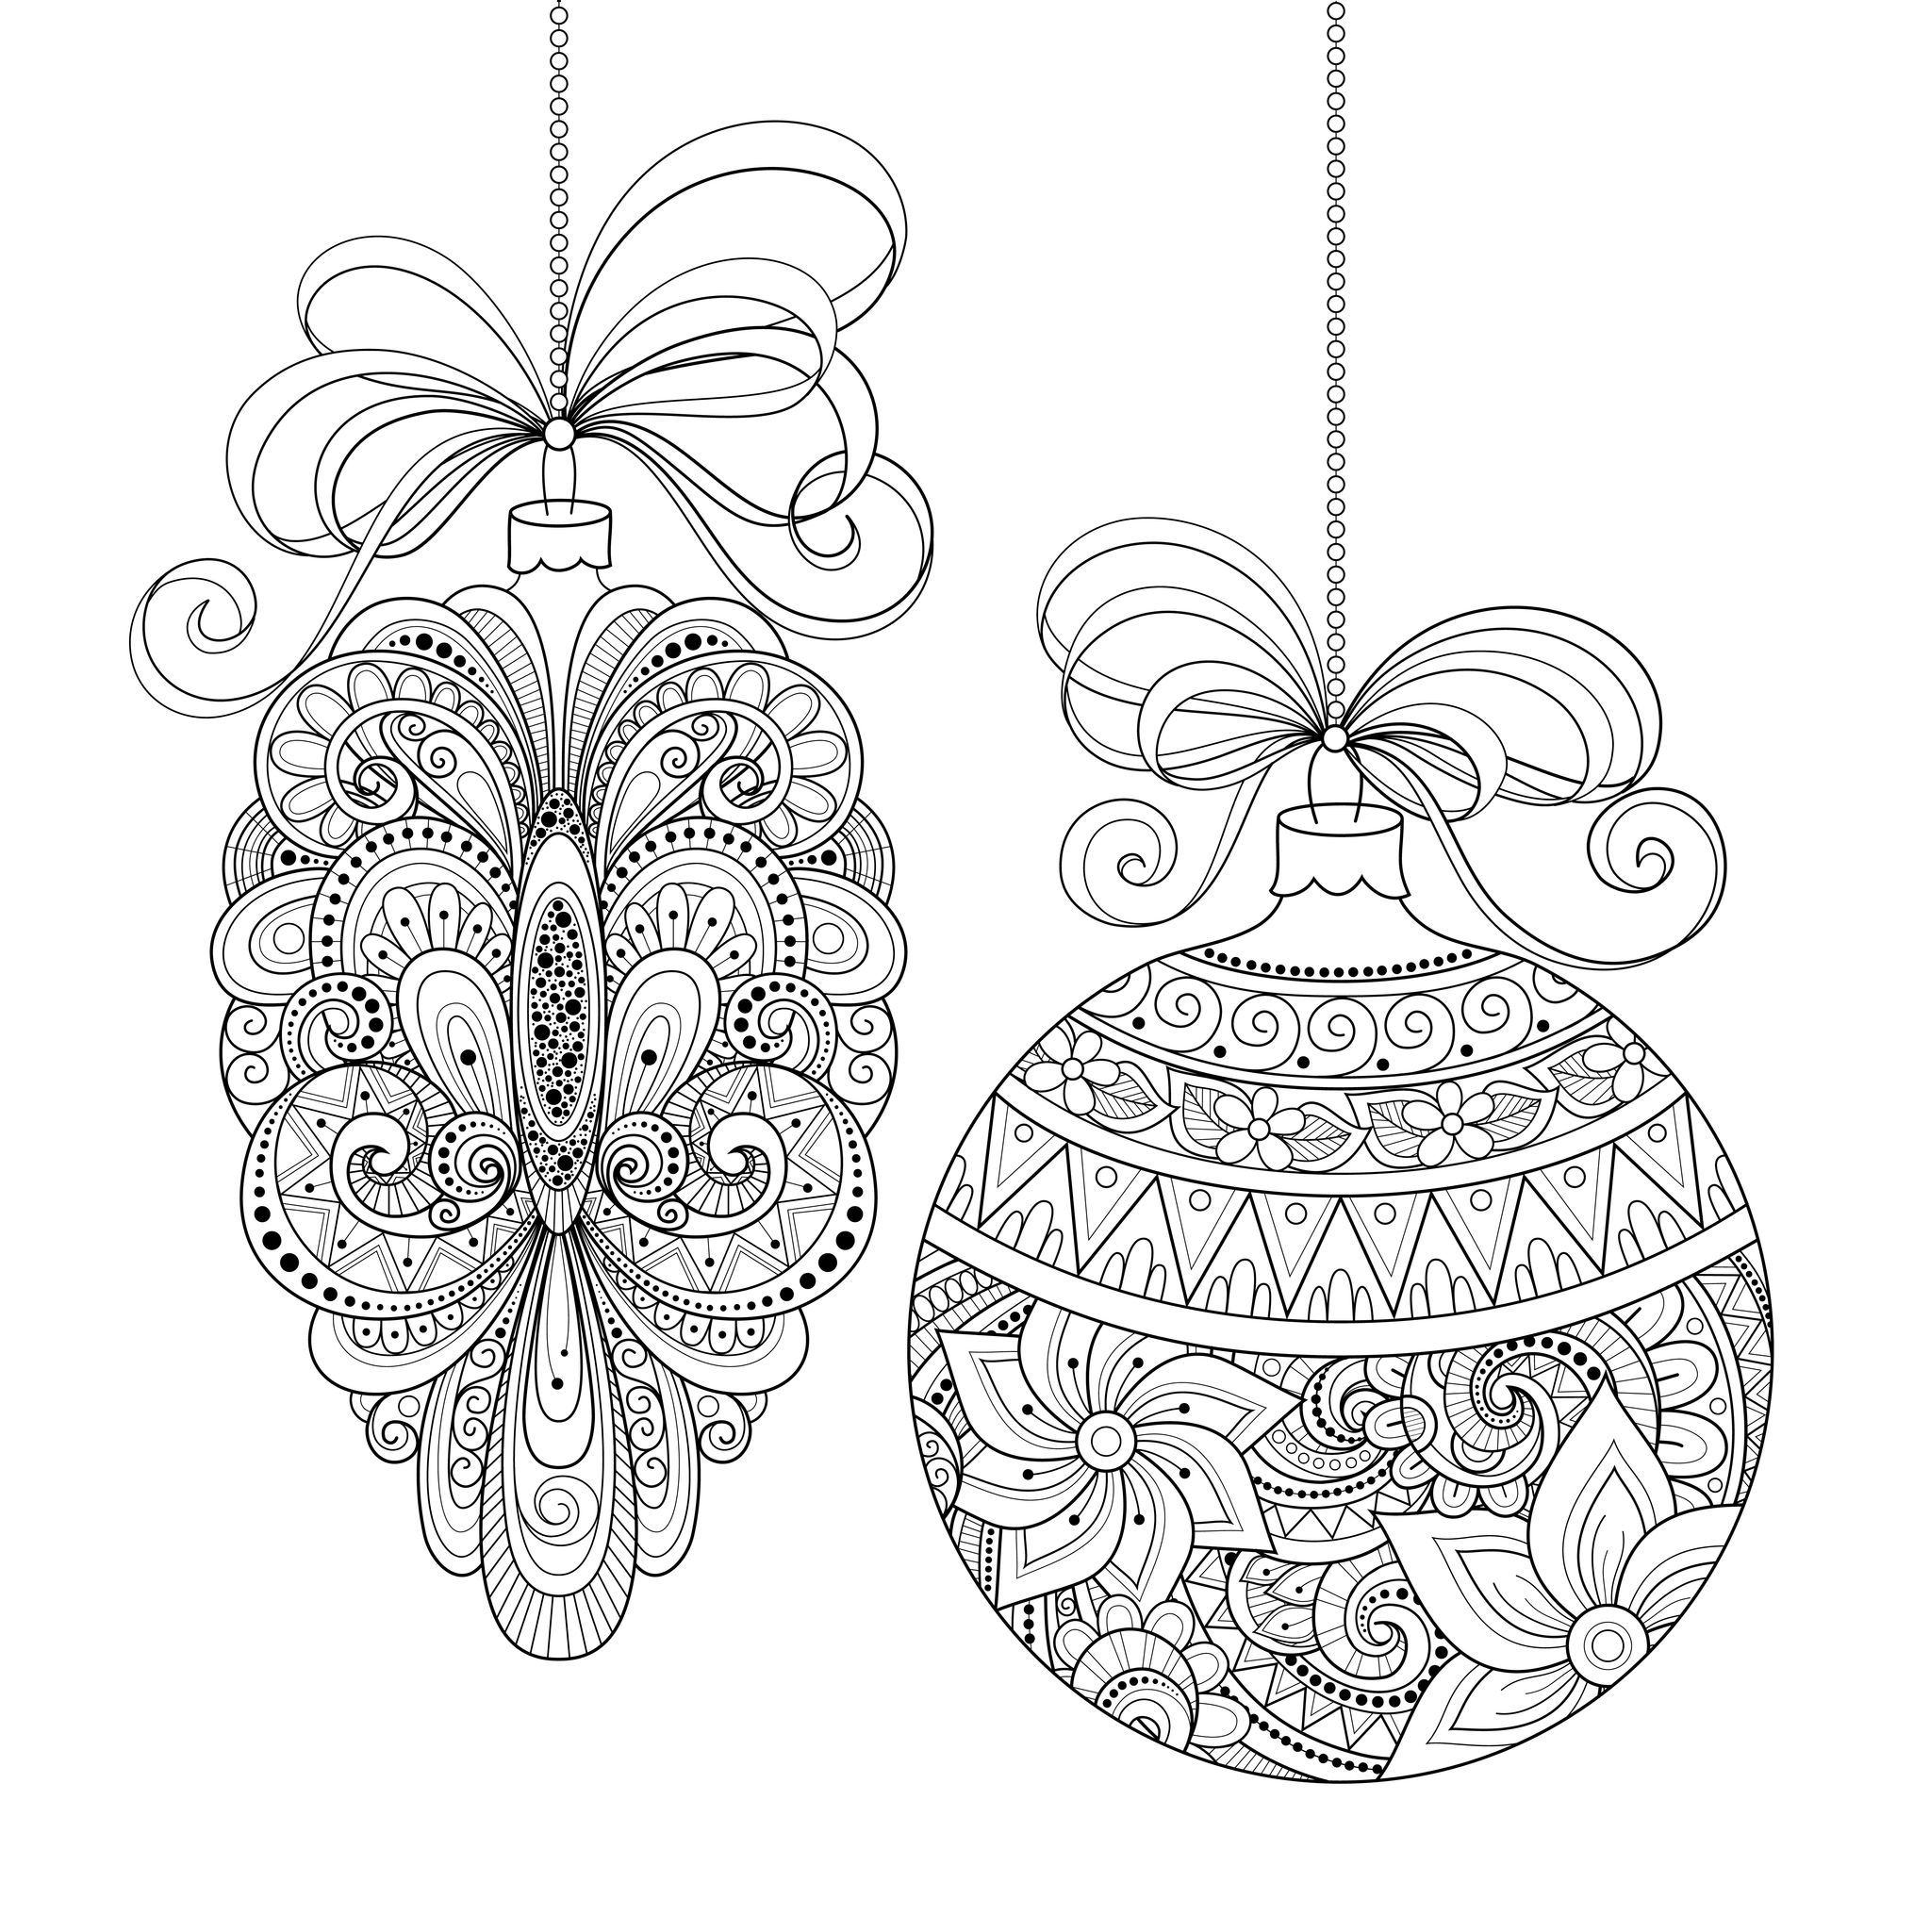 print - Make Coloring Pages